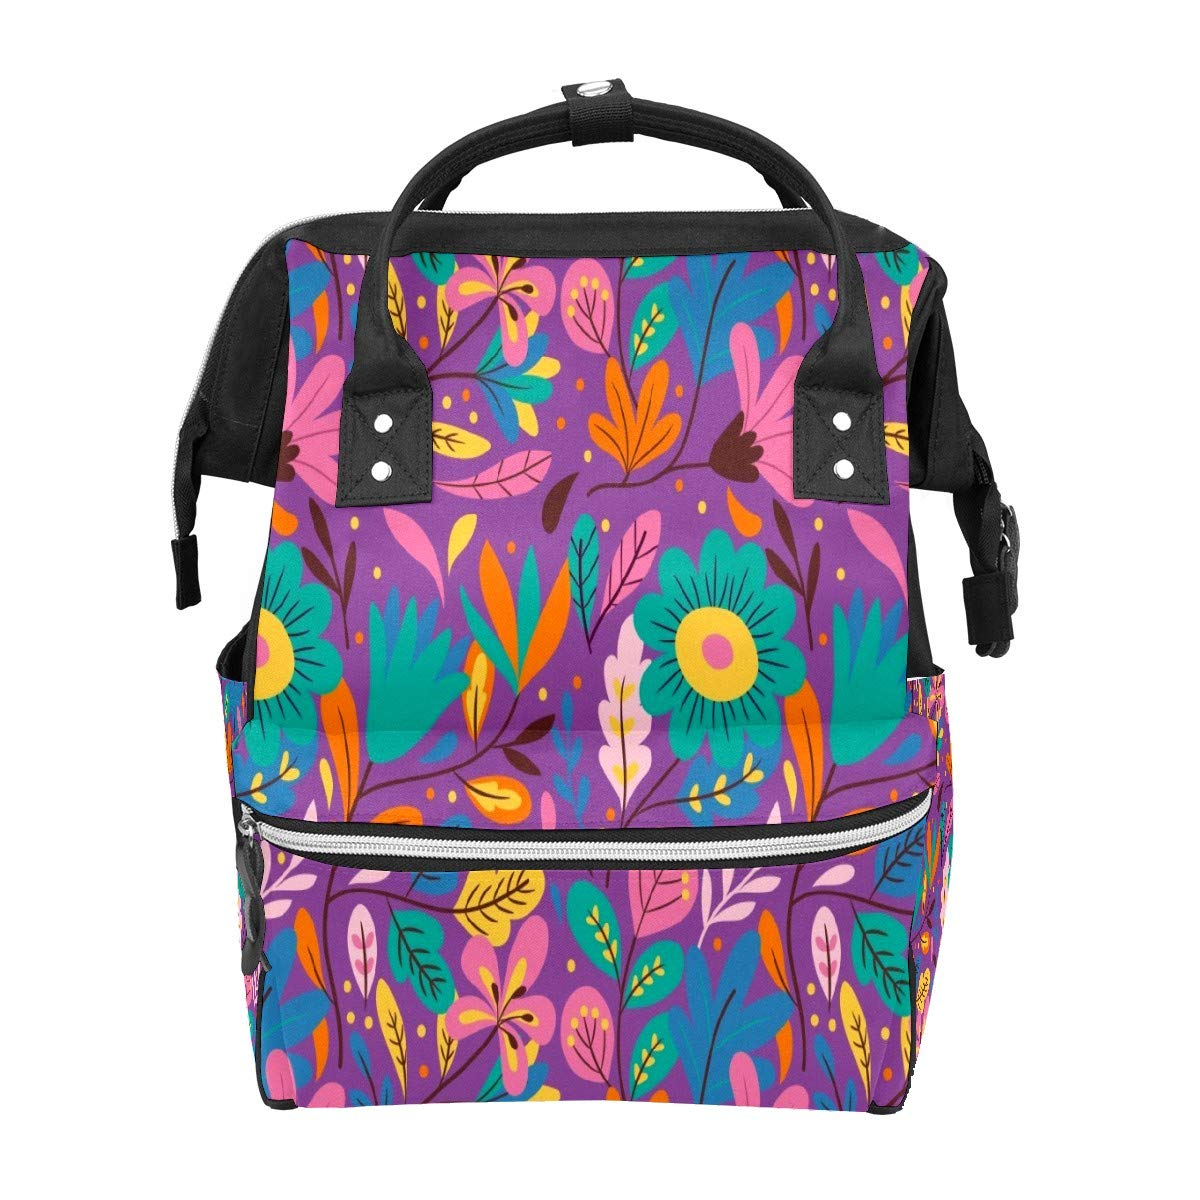 Diaper Bag Backpack Colorful Exotic Floral Multifunction Travel Back Pack Baby Changing Bags Large Capacity Waterproof Stylish